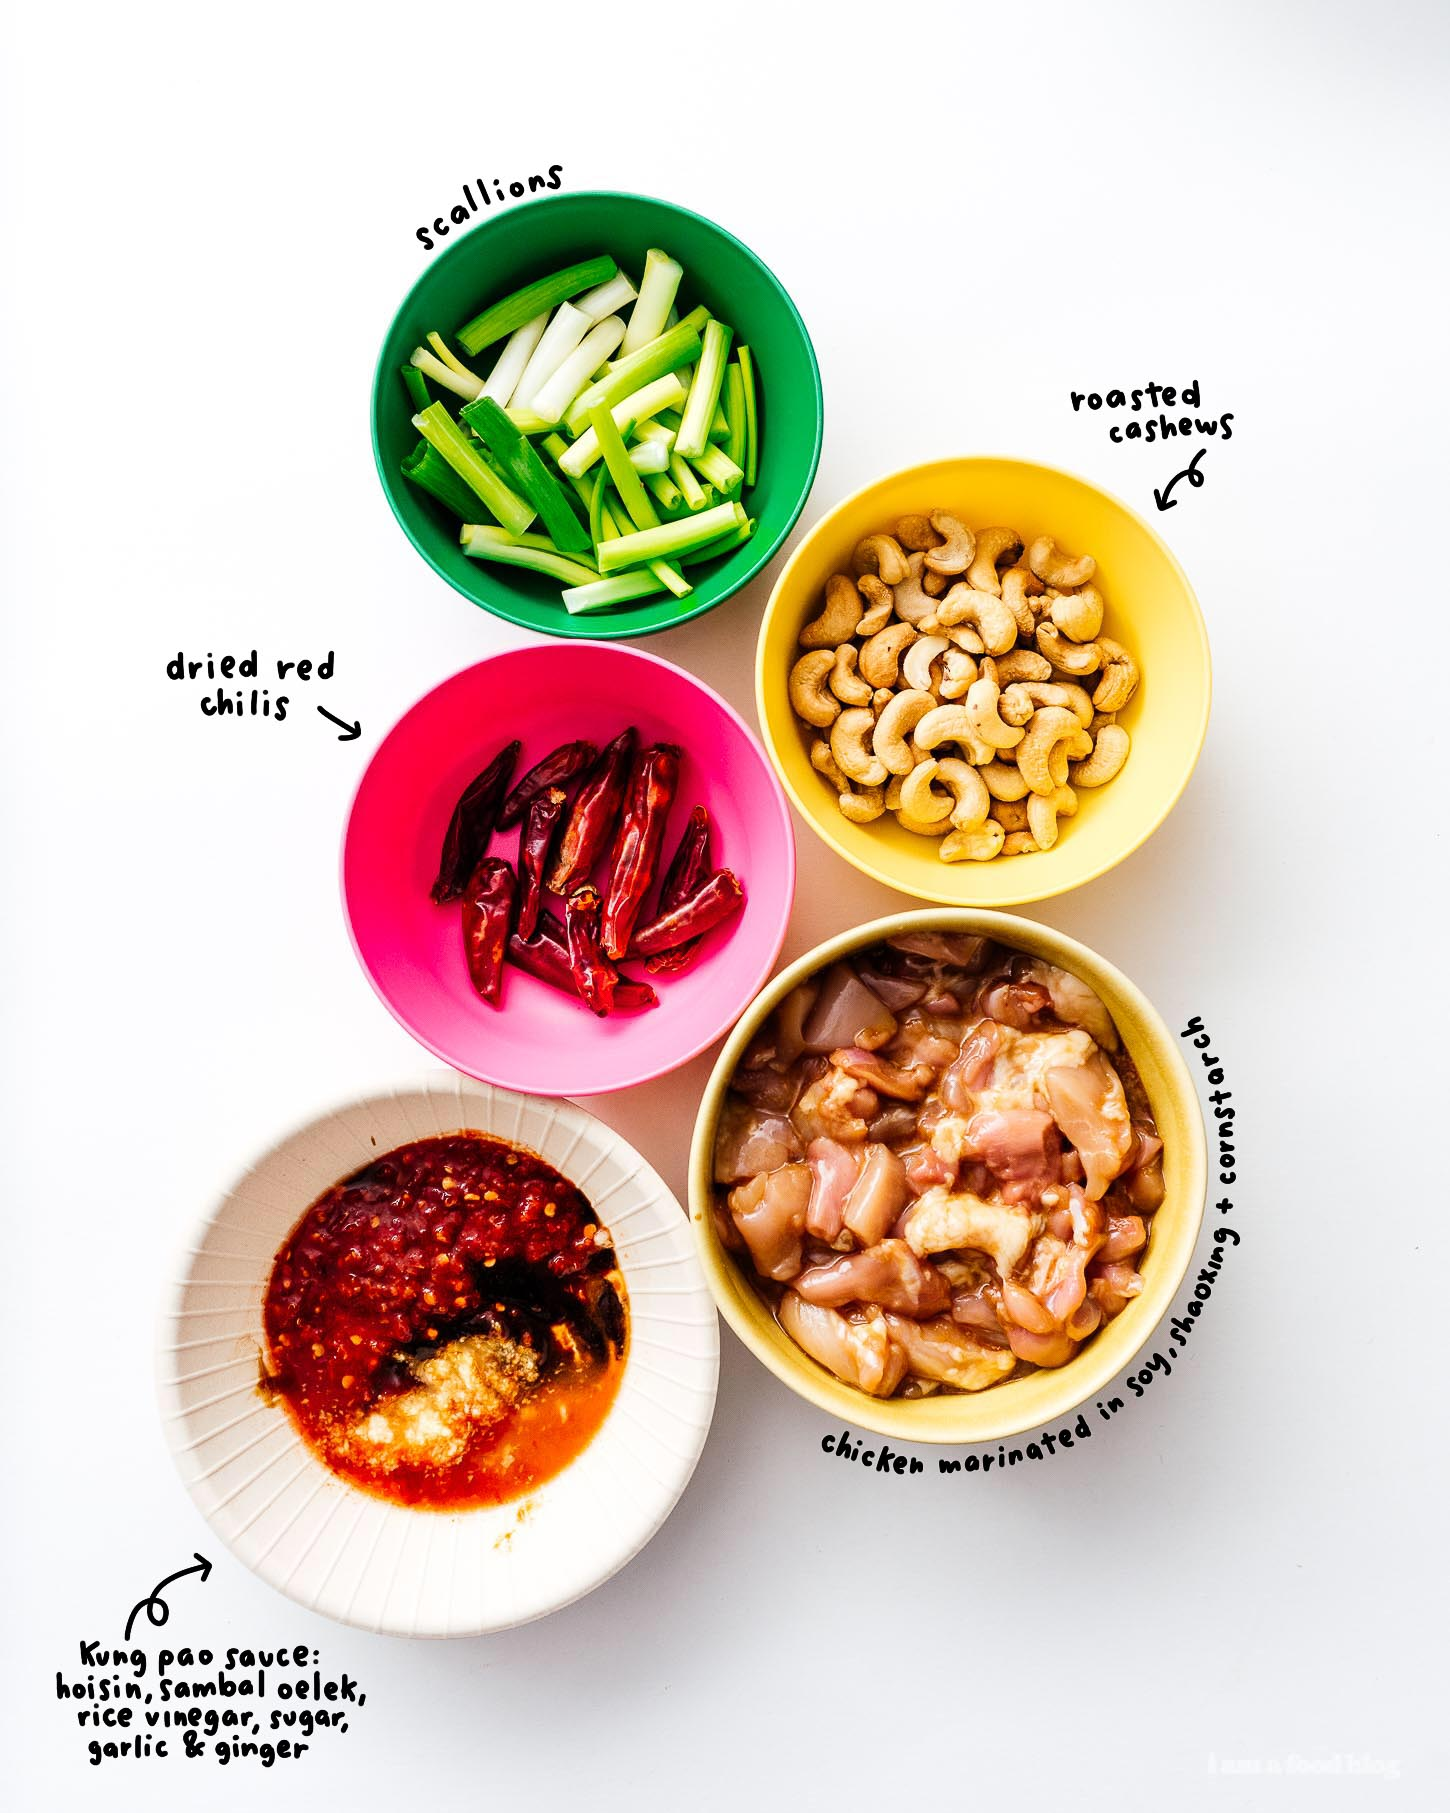 kung pao chicken ingredients | www.iamafoodblog.com